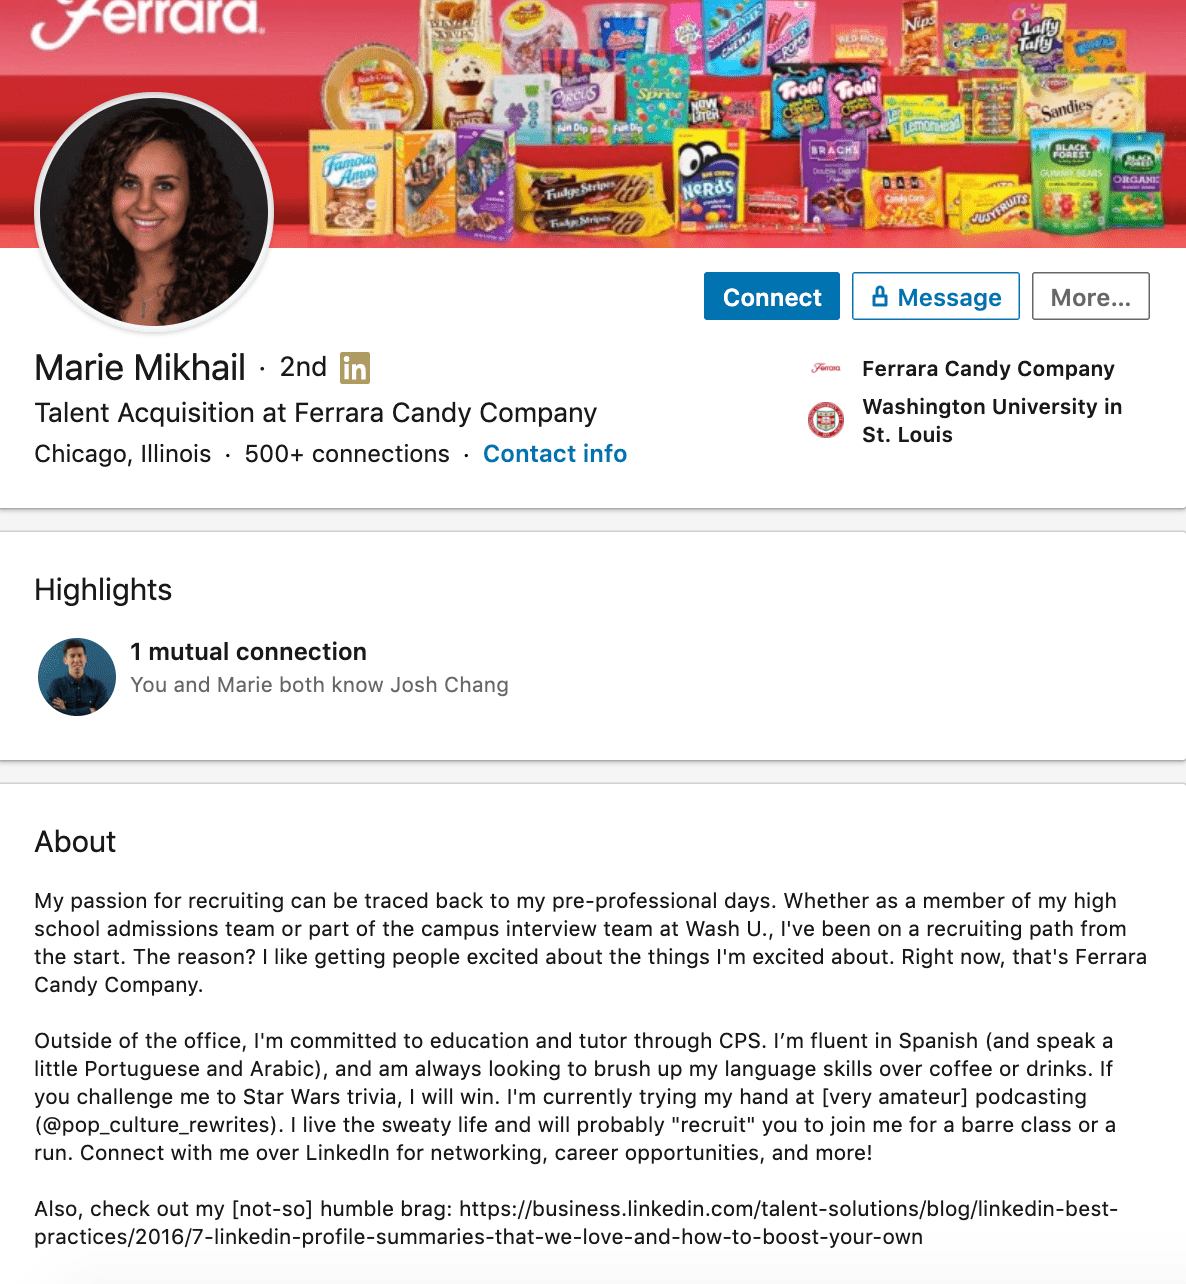 Marie Mikhail's professional bio on LinkedIn